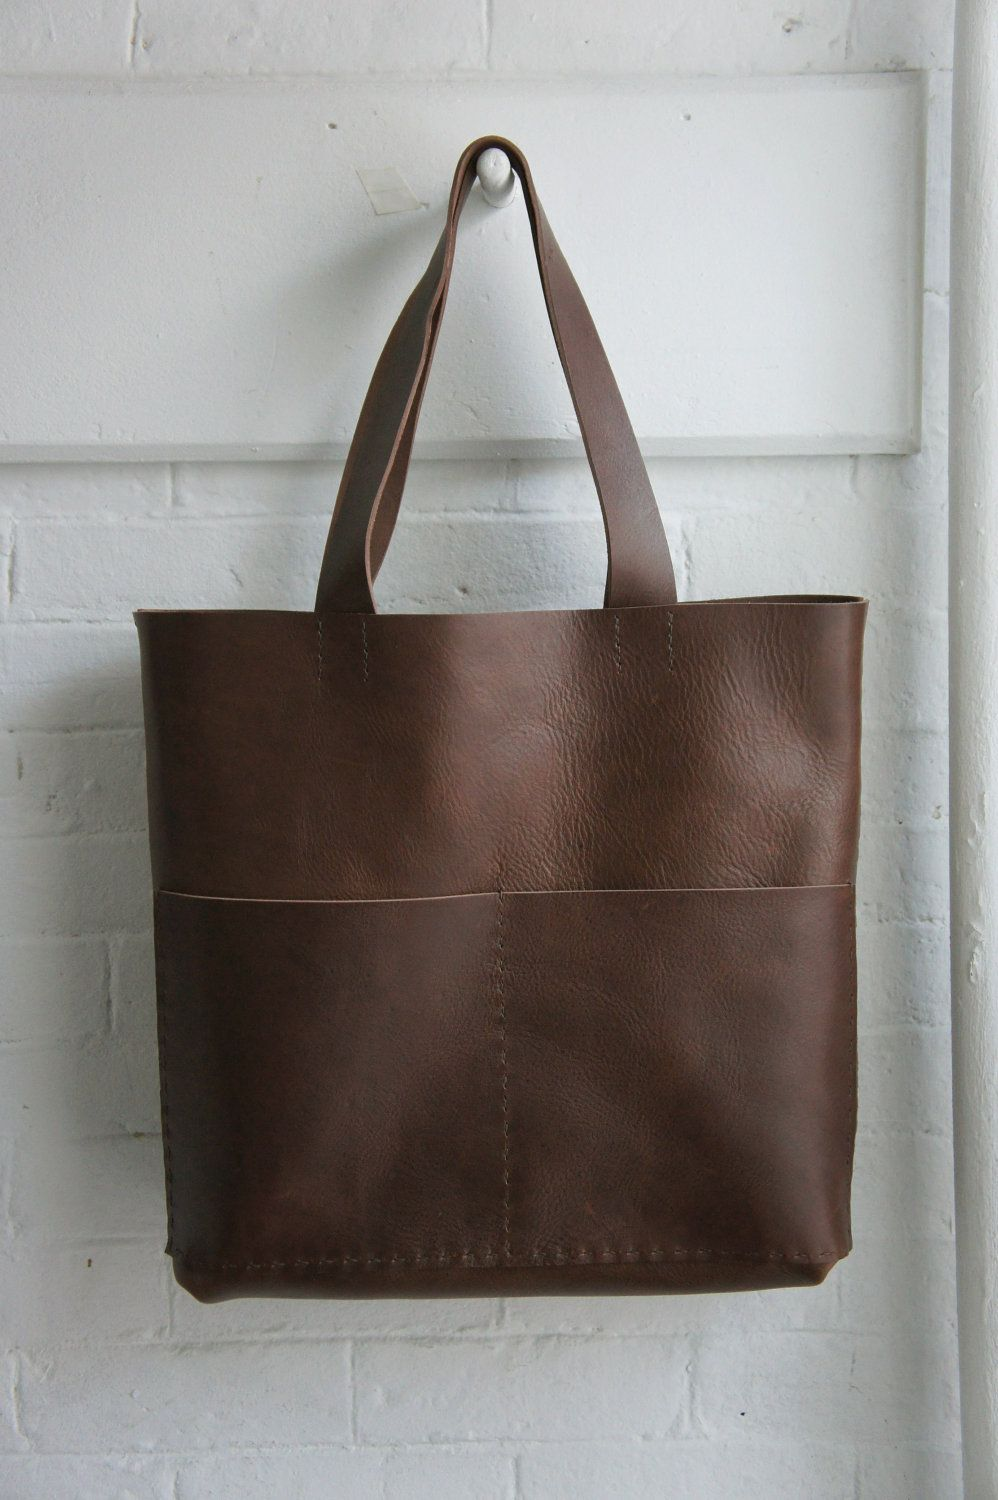 Heavy Leather Tote - Havana Brown - Unisex - Long Straps. $375.00, via Etsy.